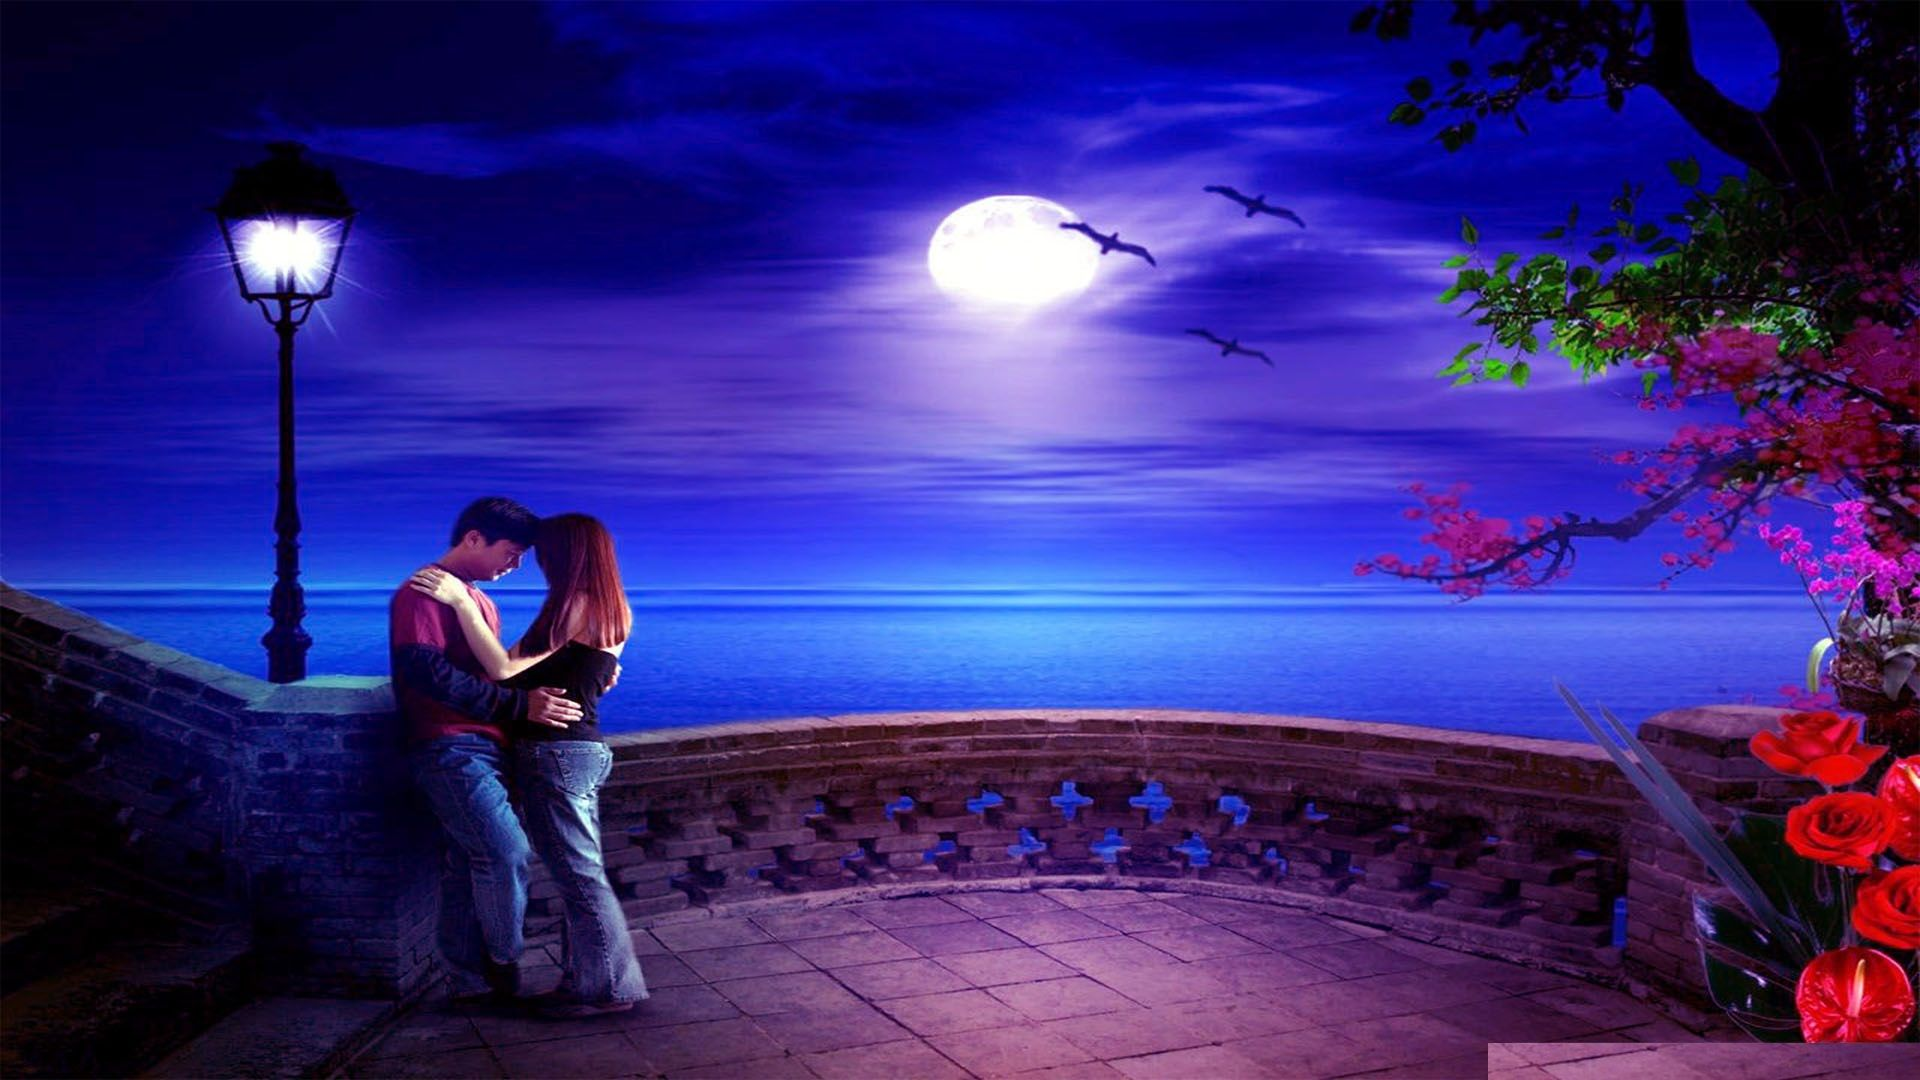 New Full Hd Love Wallpaper : Romantic Love HD Wallpapers : Find best latest Romantic Love HD Wallpapers for your Pc desktop ...